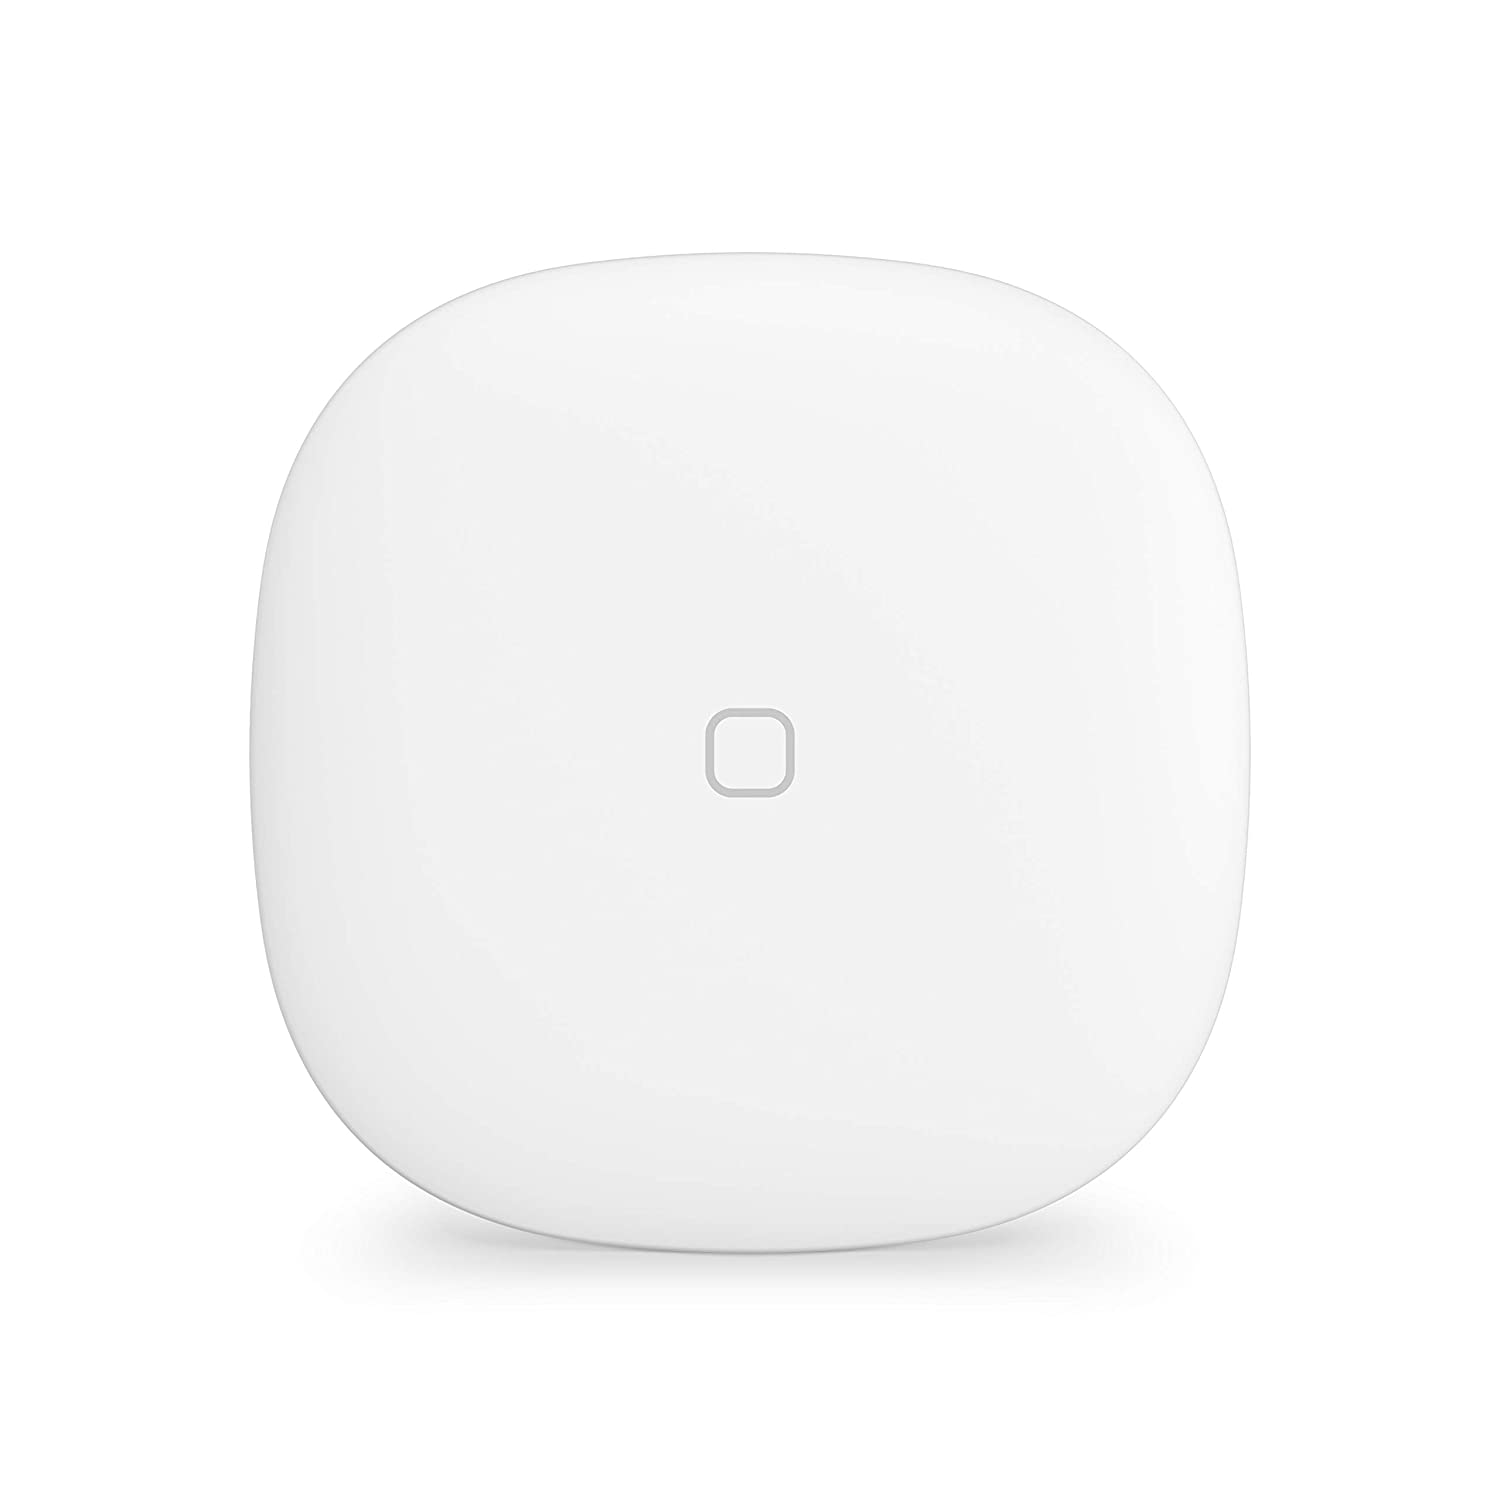 Samsung SmartThings Button [GP-U999SJVLEAA] One-Touch Remote Control for Lights, Appliances, and Scenes - SmartThings Hub Compatible - ZigBee - White